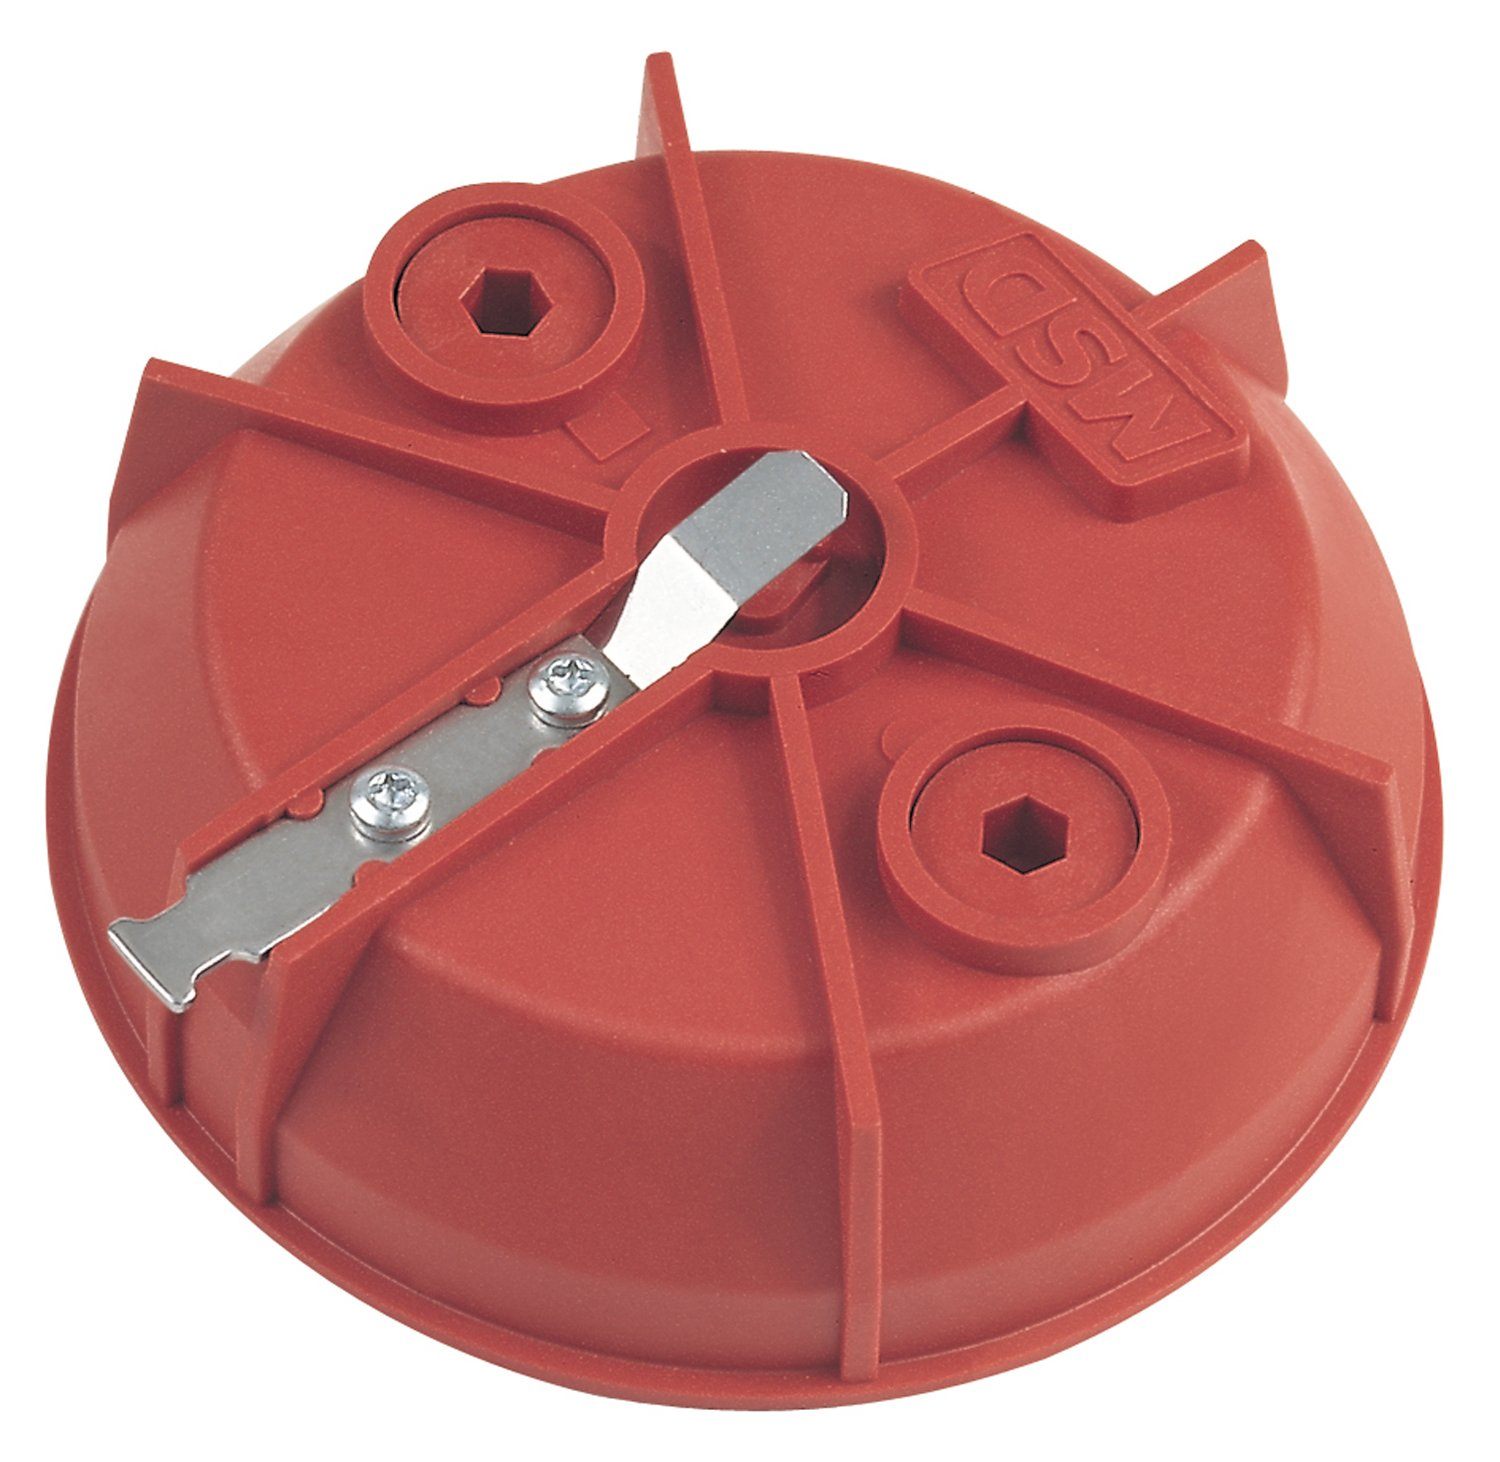 7424 - Red Rotor for Pro Cap Distributor Image